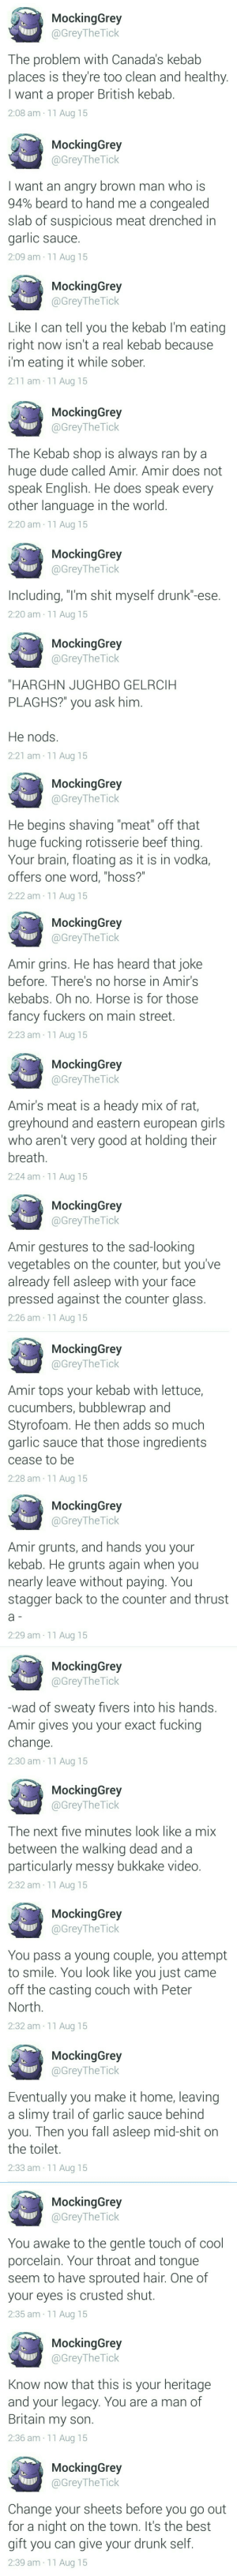 """Beard, Beef, and Drunk: MockingGrey  @GreyThe Tick  The problem with Canada's kebab  places is they're too clean and healthy.  I want a proper British kebab.  2:08 am 11 Aug 15  MockingGrey  @GreyThe Tick  I want an angry brown man who is  94% beard to hand me a congealed  slab of suspicious meat drenched in  garlic sauce.  2:09 am 11 Aug 15  MockingGrey  @GreyTheTick  Like I can tell you the kebab I'm eating  right now isn't a real kebab because  i'm eating it while sober  2:11 am 11 Aug 15  MockingGrey  @GreyThe Tick  The Kebab shop is always ran by a  huge dude called Amir. Amir does not  speak English. He does speak every  other language in the world.  2:20 am 11 Aug 15  MockingGrey  @GreyThe Tick  Including, """"I'm shit myself drunk""""-ese.  2:20 am-11 Aug 15  MockingGrey  @GreyThe Tick  """"HARGHN JUGHBO GELRCIH  PLAGHS?"""" you ask him.  Нe nods.  2:21 am 11 Aug 15  MockingGrey  @GreyThe Tick  He begins shaving """"meat"""" off that  huge fucking rotisserie beef thing.  Your brain, floating as it is in vodka,  offers one word, """"hoss?""""  2:22 am 11 Aug 15  MockingGrey  @GreyThe Tick  Amir grins. He has heard that joke  before. There's no horse in Amir's  kebabs. Oh no. Horse is for those  fancy fuckers on main street  2:23 am 11 Aug 15  MockingGrey  @GreyThe Tick  Amir's meat is a heady mix of rat,  greyhound and eastern european girls  who aren't very good at holding their  breath  2:24 am 11 Aug 15  MockingGrey  @GreyThe Tick  Amir gestures to the sad-looking  vegetables on the counter, but you've  already fell asleep with your face  pressed against the counter glass.  2:26 am 11 Aug 15  MockingGrey  @GreyTheTick  Amir tops your kebab with lettuce,  cucumbers, bubblewrap and  Styrofoam. He then adds so much  garlic sauce that those ingredients  cease to be  2:28 am 11 Aug 15  MockingGrey  @GreyTheTick  Amir grunts, and hands you your  kebab. He grunts again when you  nearly leave without paying. You  stagger back to the counter and thrust  a  2:29 am 11 Aug 15  MockingGrey  """